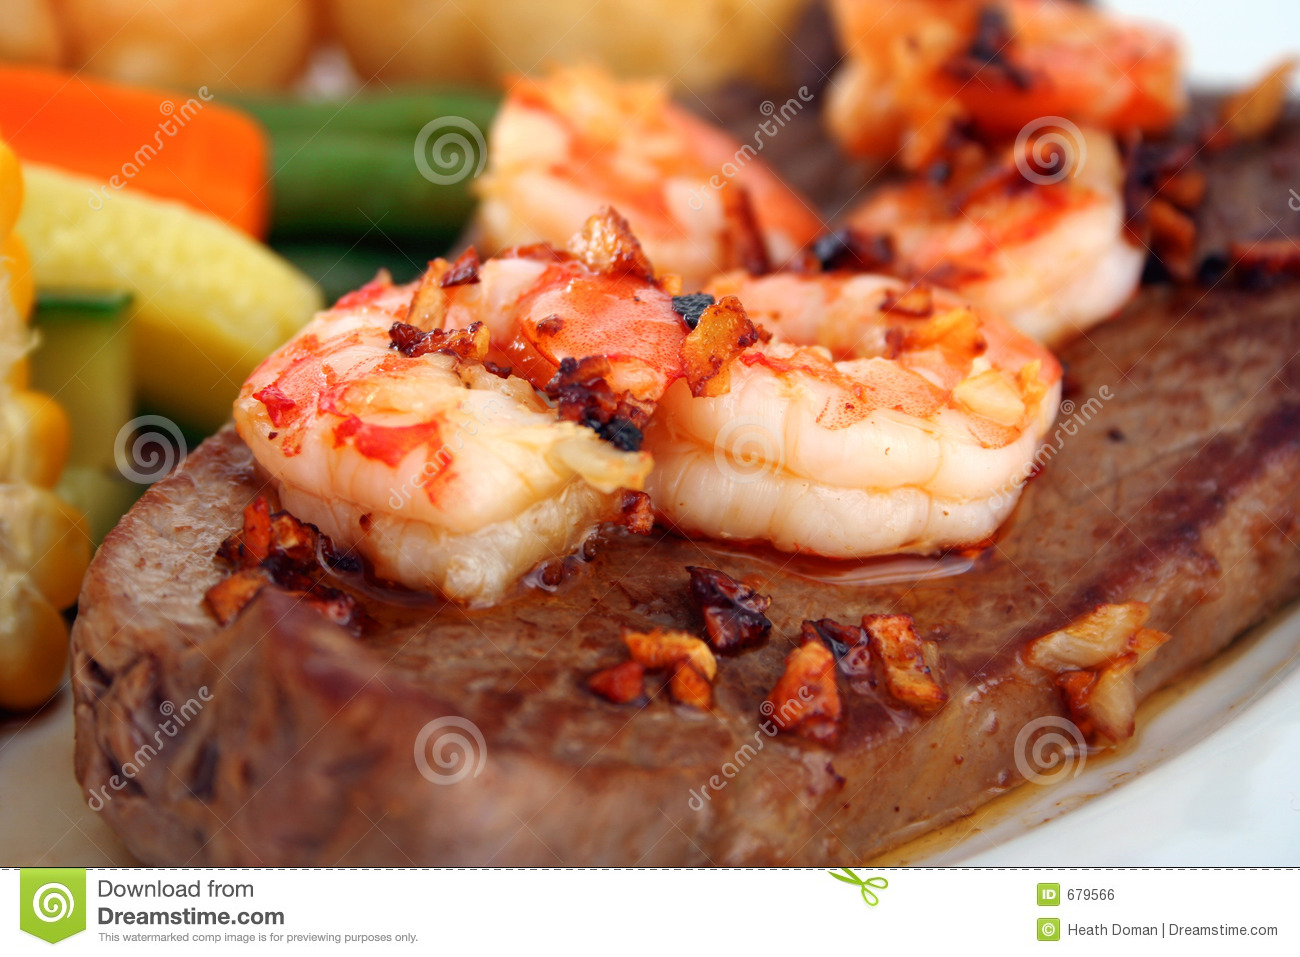 surf n 39 turf stock photo image of prawns prawn menu 679566. Black Bedroom Furniture Sets. Home Design Ideas